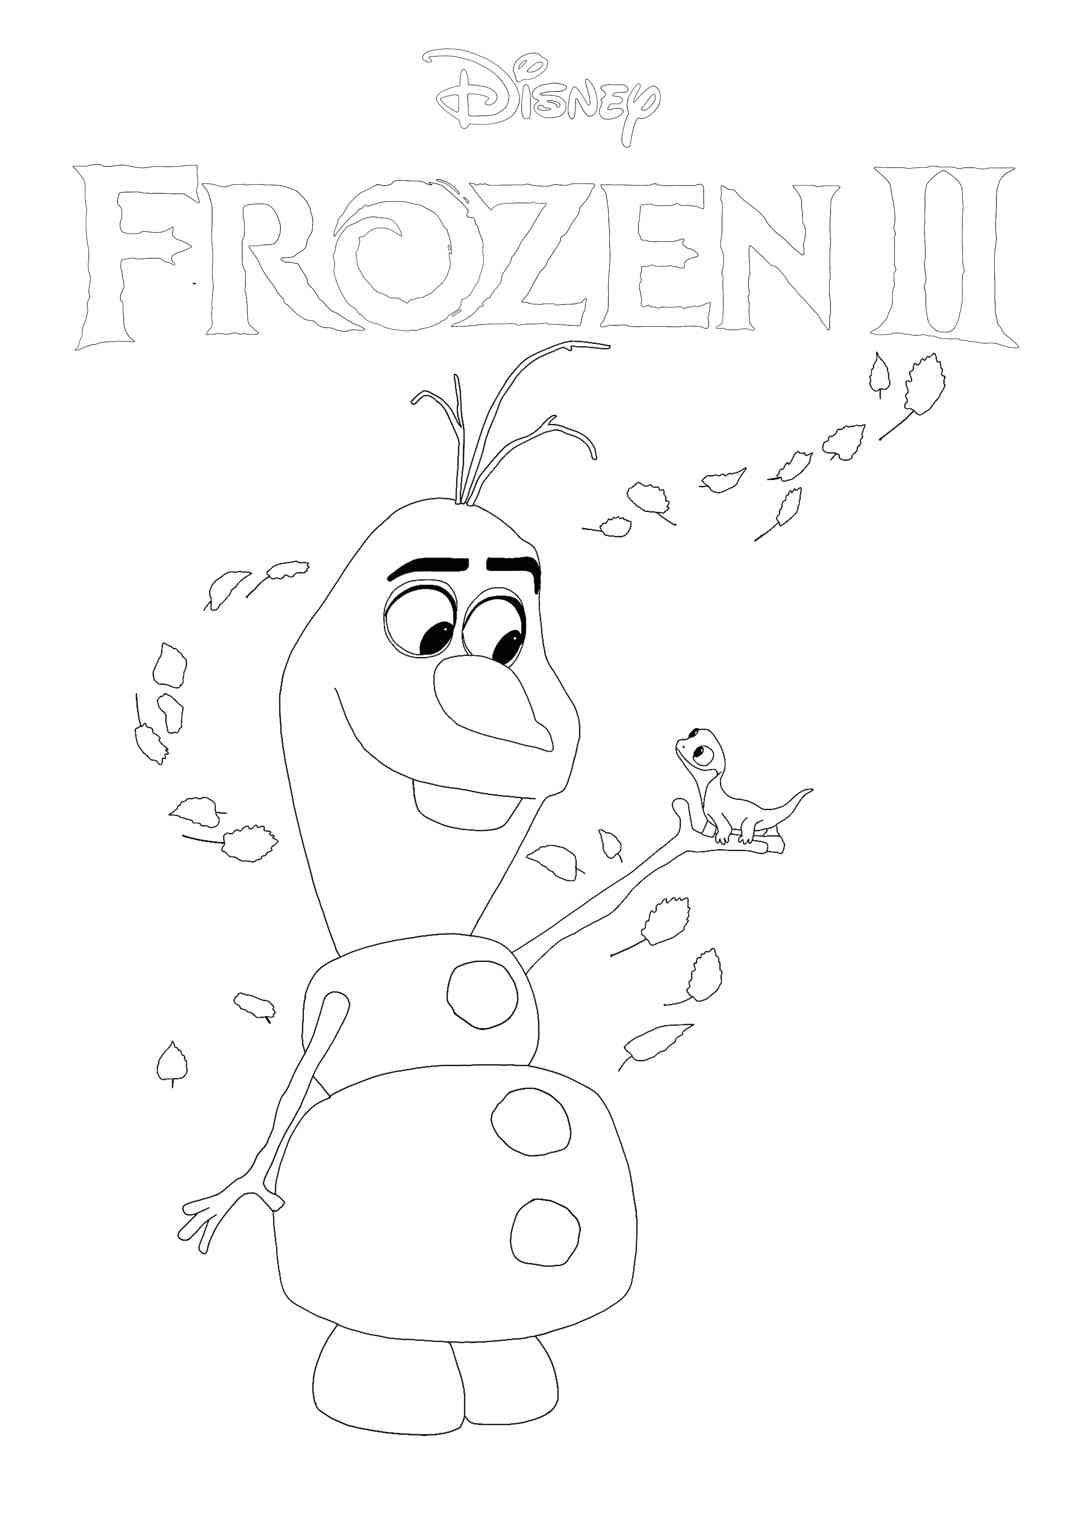 Frozen 2 Olaf And Bruni Coloring Page Frozen 2 Olaf And Bruni Coloring Page In 2020 Disney Coloring Sheets Elsa Coloring Pages Frozen Coloring